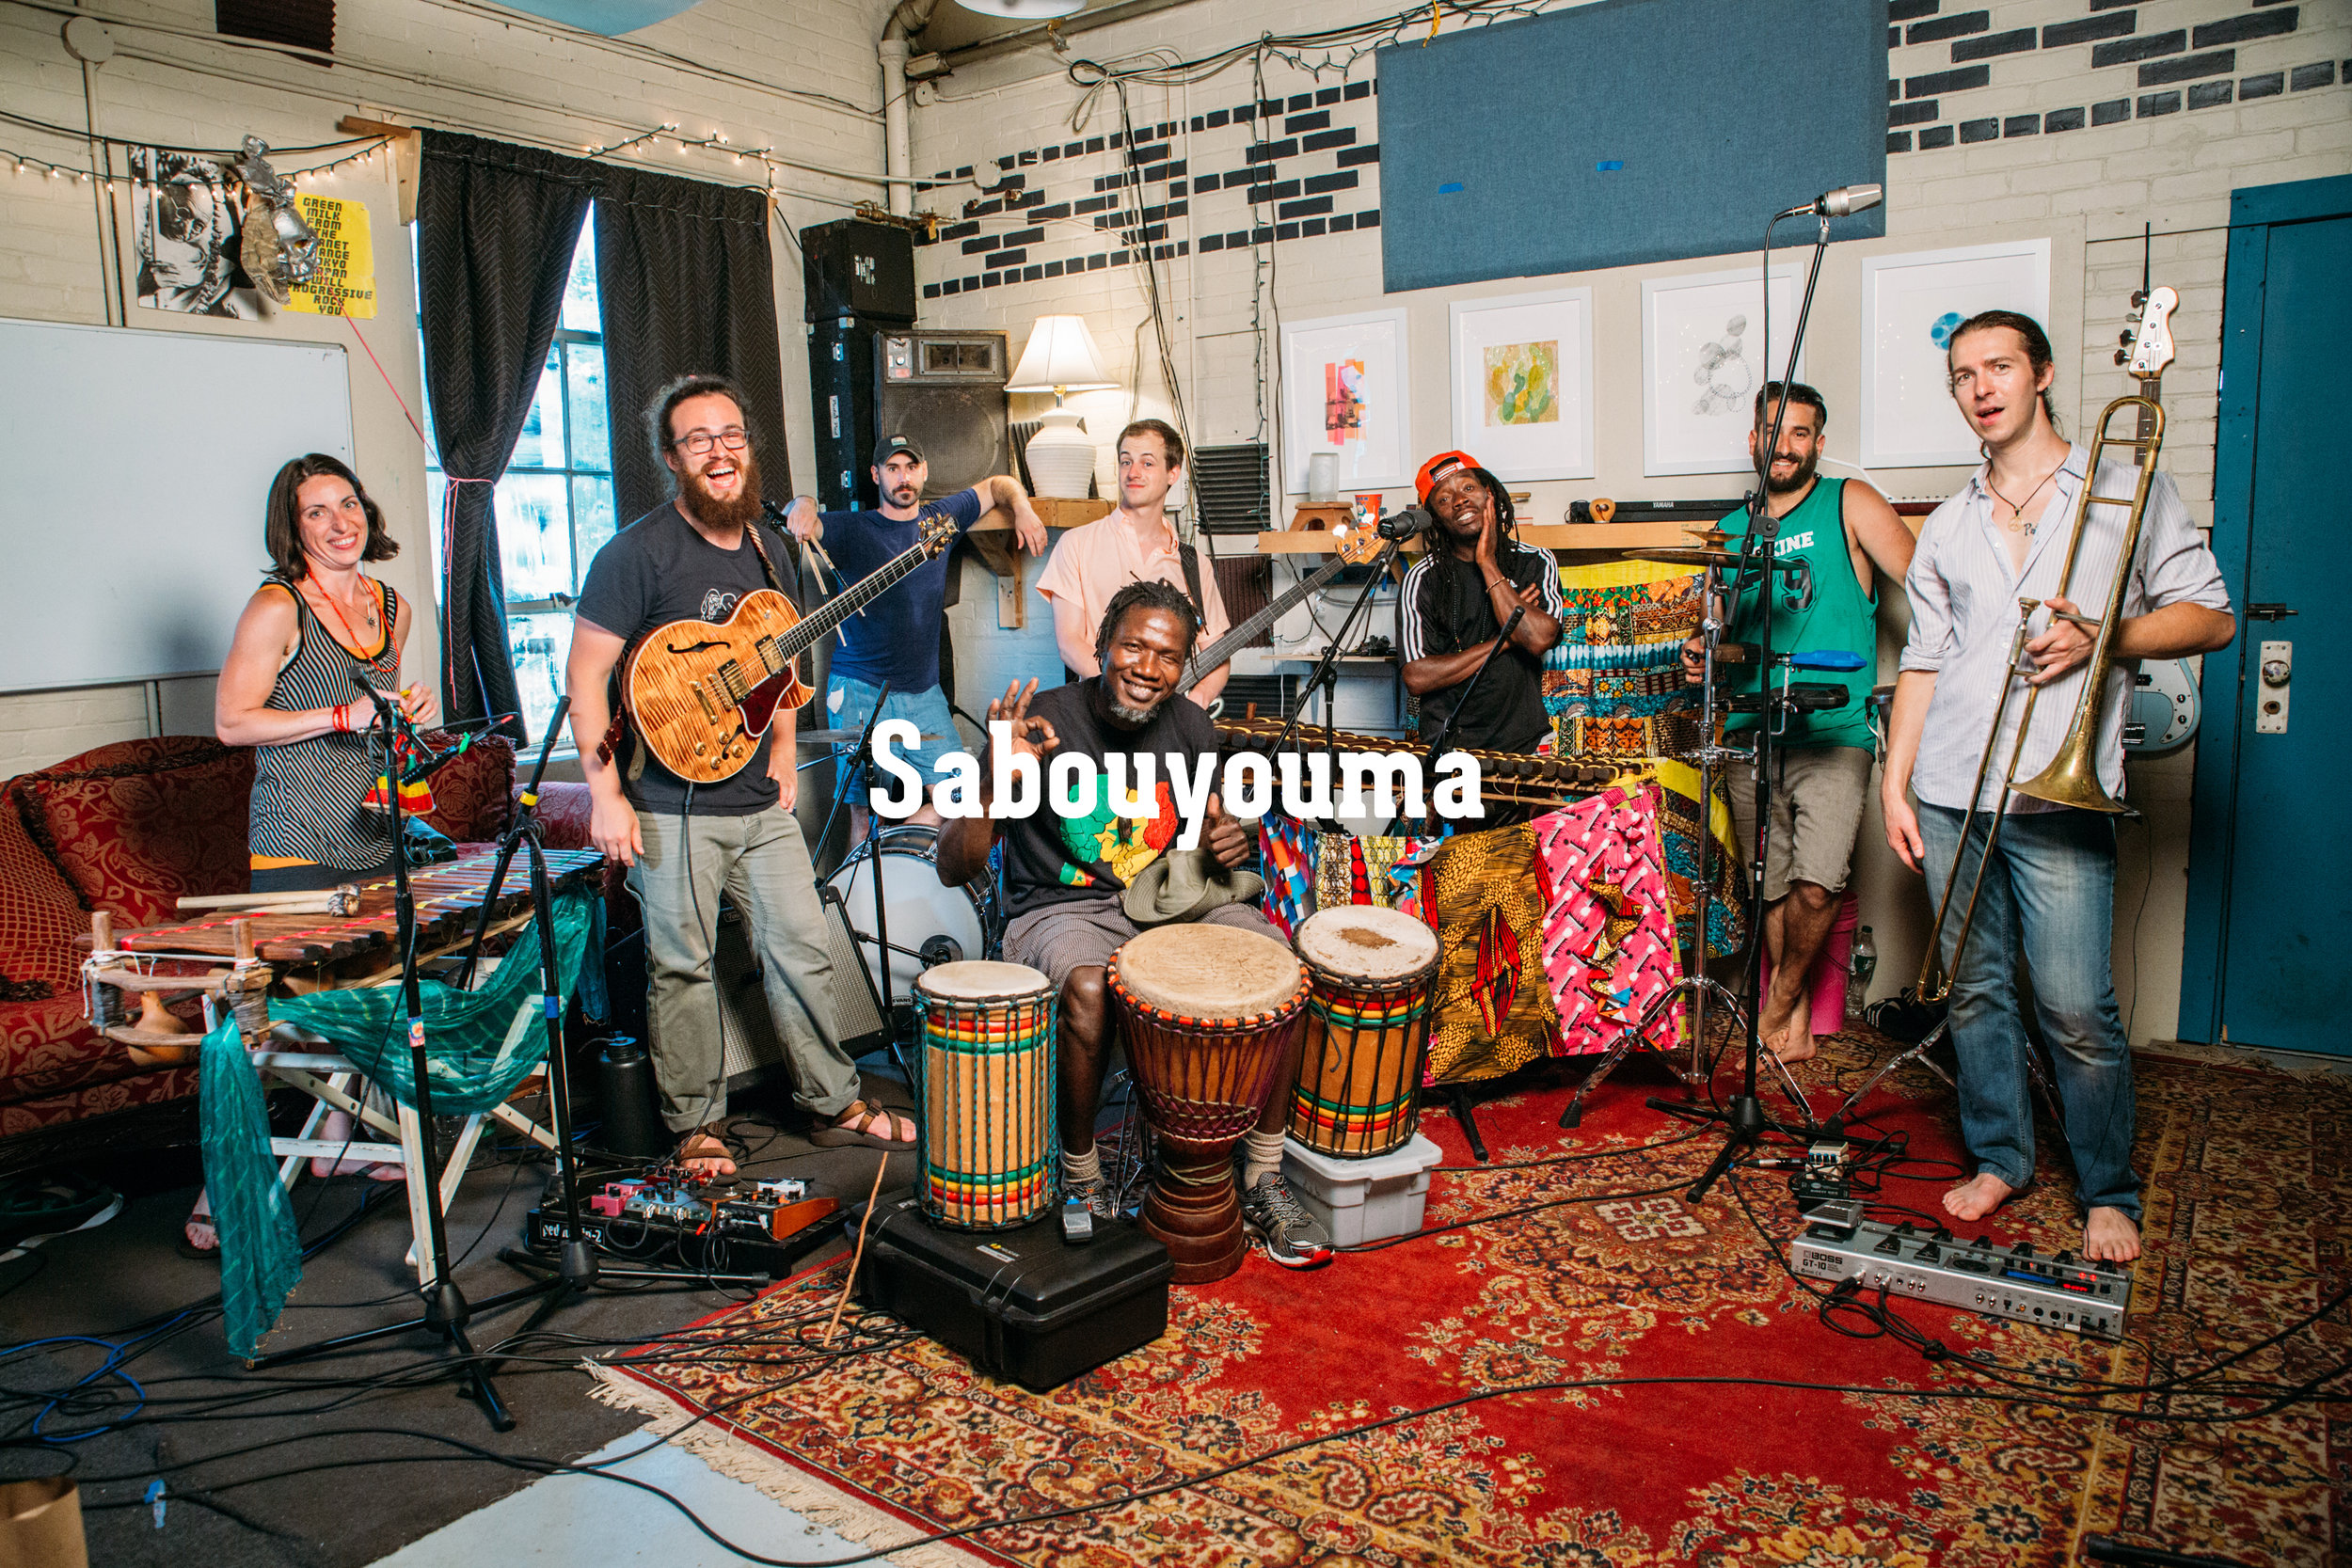 Sabouyouma is a Burlington, Vermont based Afro-Funk band led by Guinean-born Balafonist, Ousmane Camara. They combine traditional West African dance music with contemporary funk and reggae.